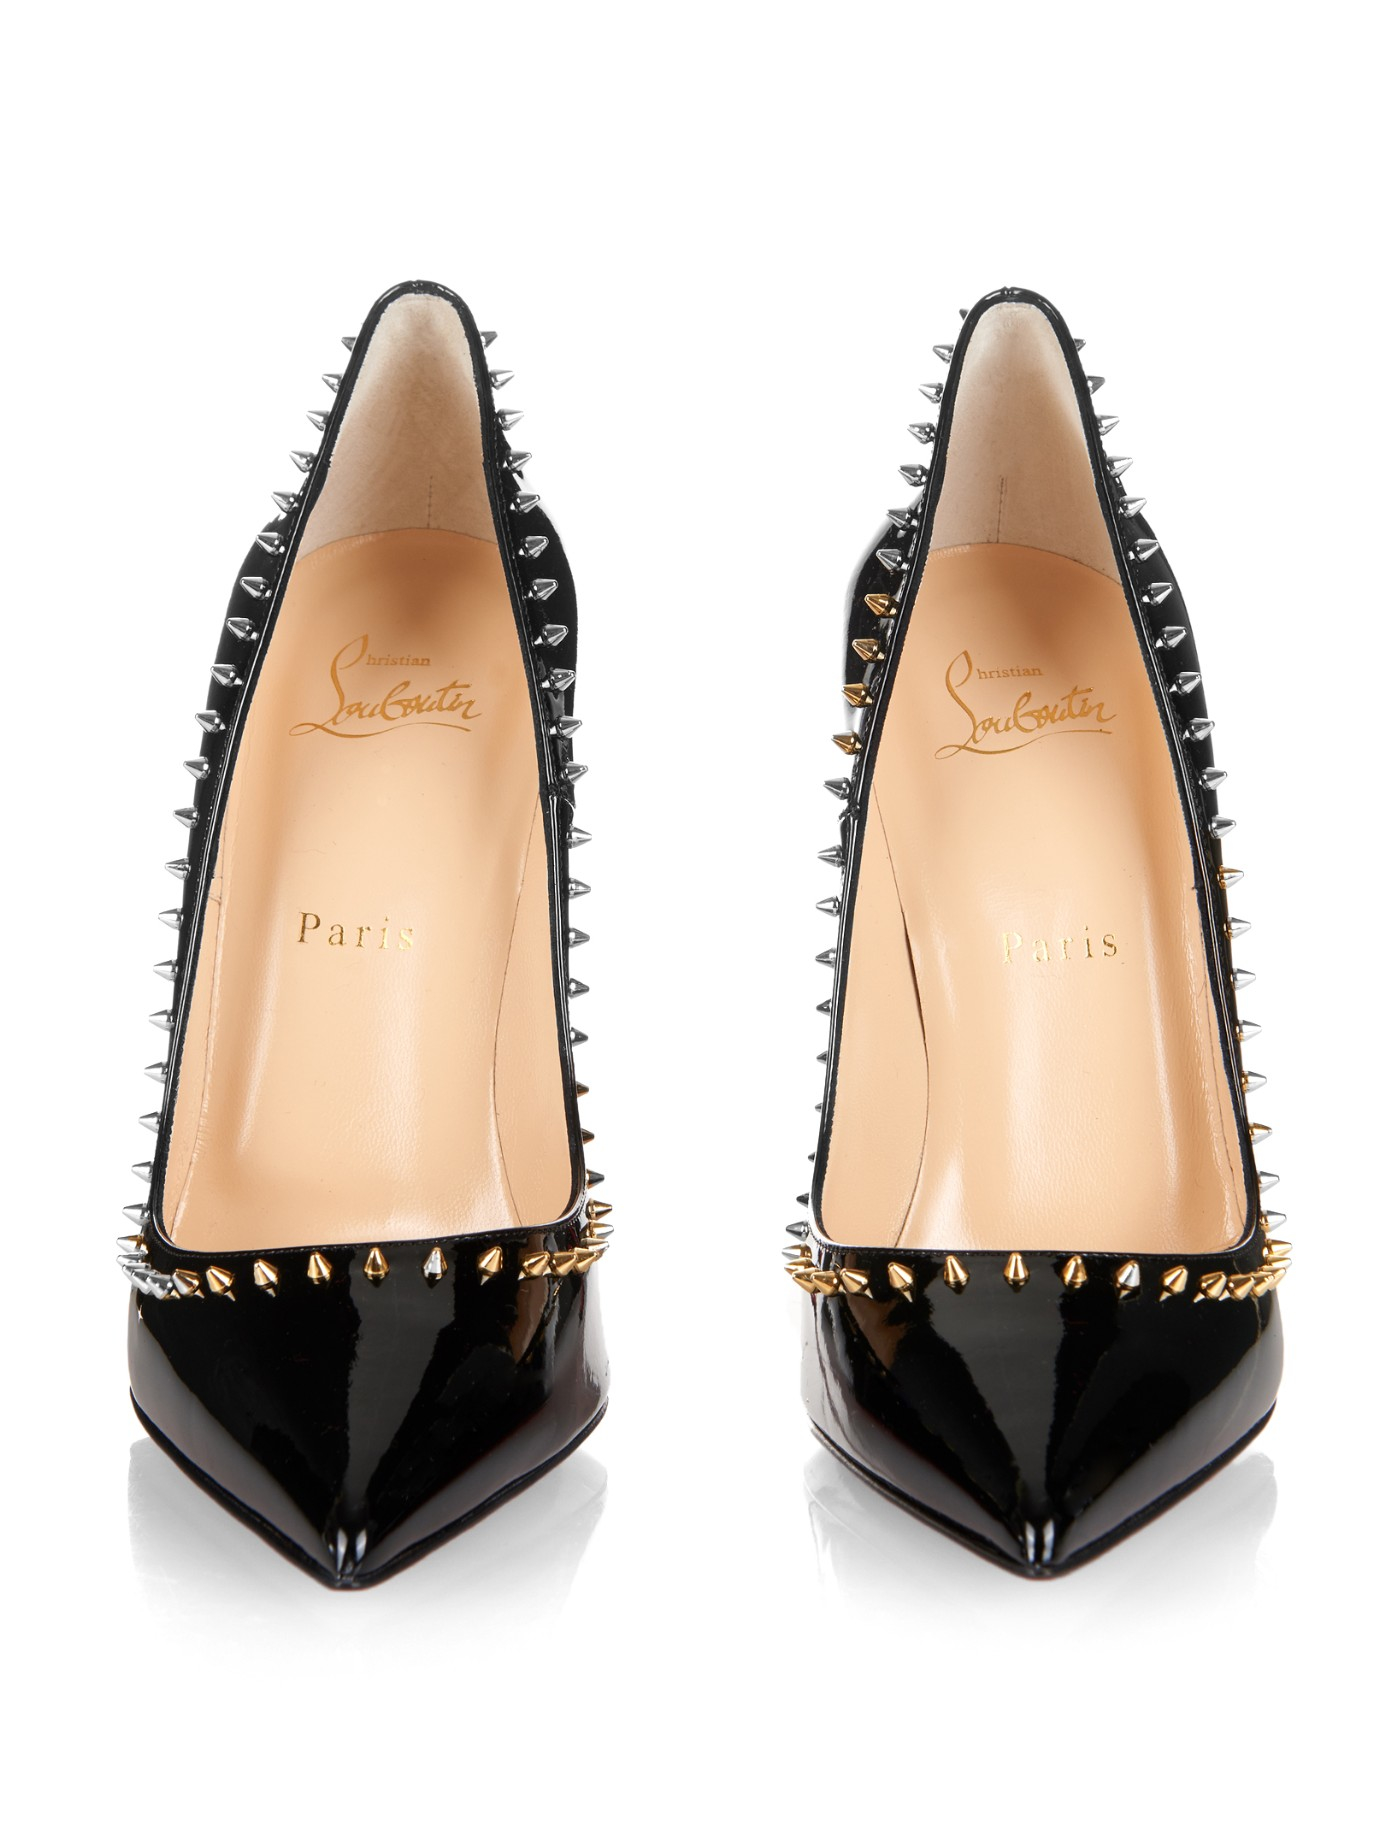 cheap christian louboutin shoes replica - Christian louboutin Anjalina Studded Patent Leather Pumps in Black ...